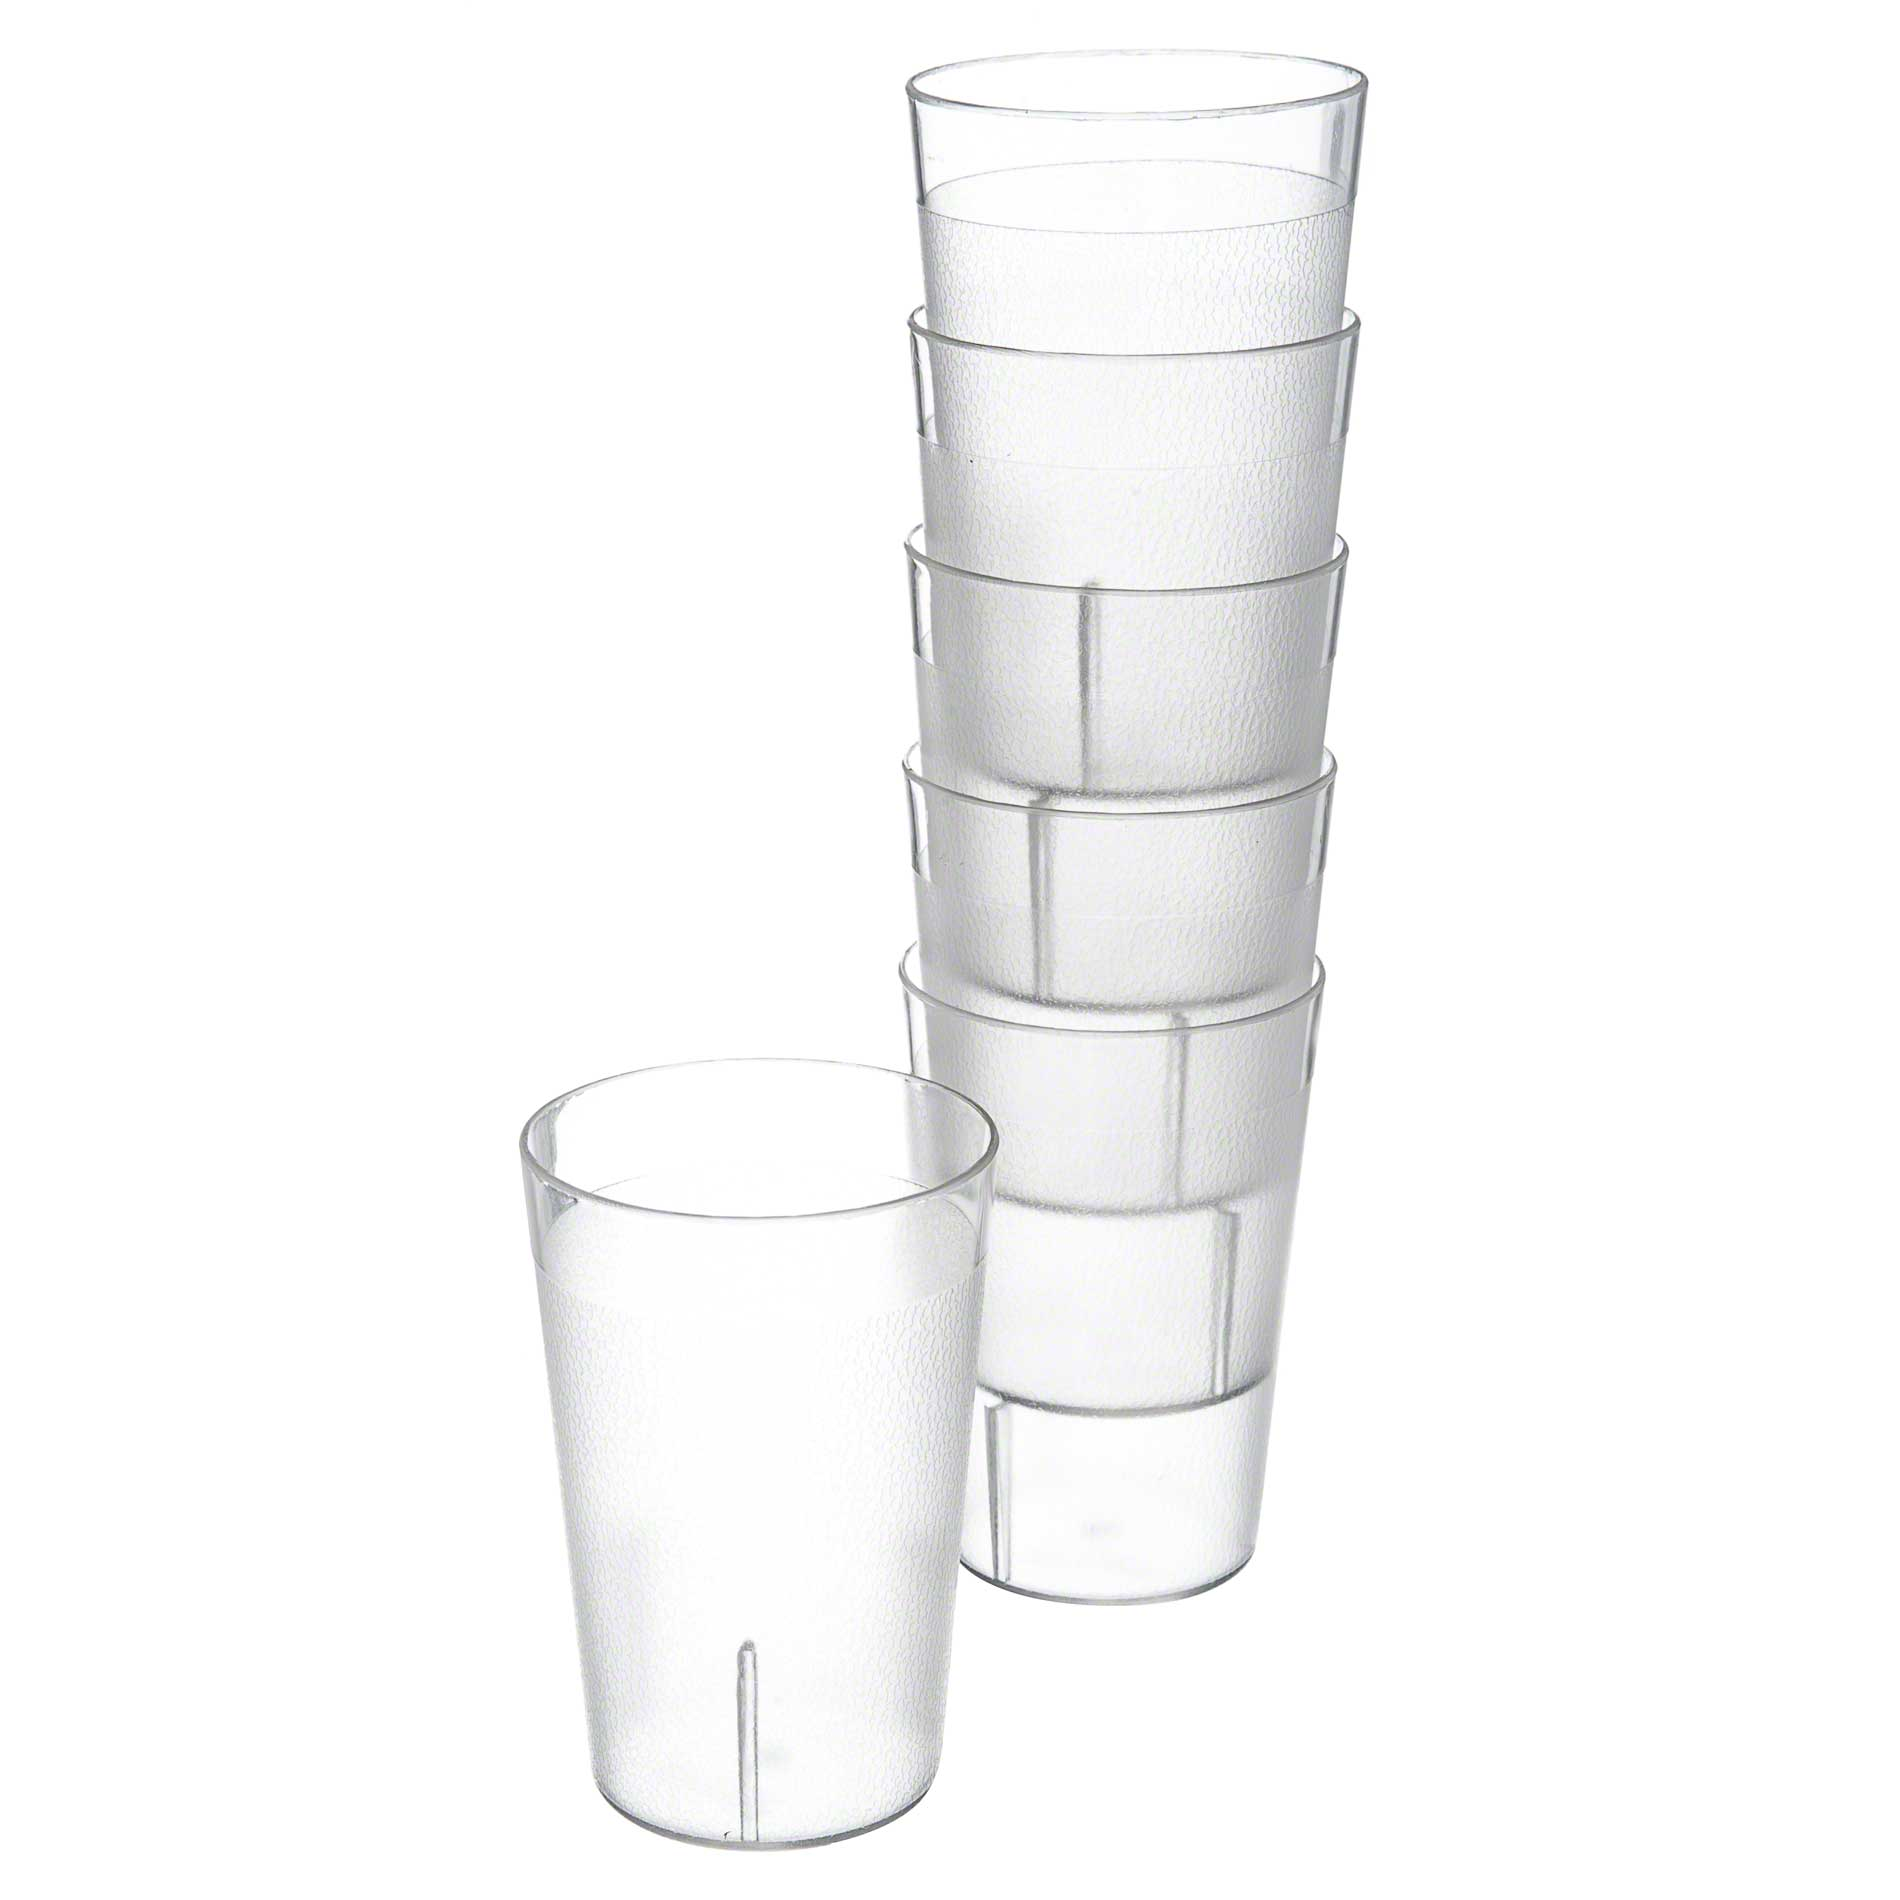 Kids Cup, 8 oz, clear, acrylic, Stackable